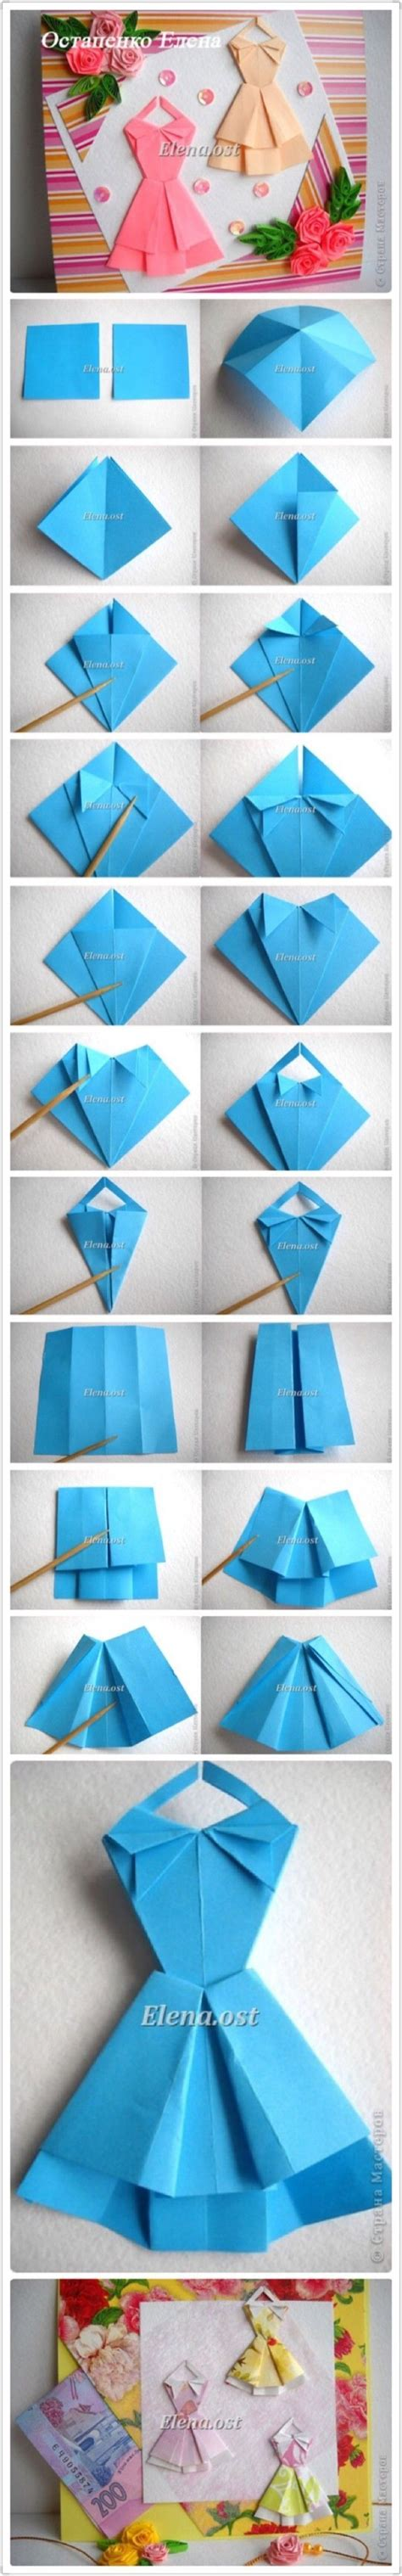 Paper Origami Ornaments - 17 best ideas about origami ornaments on diy